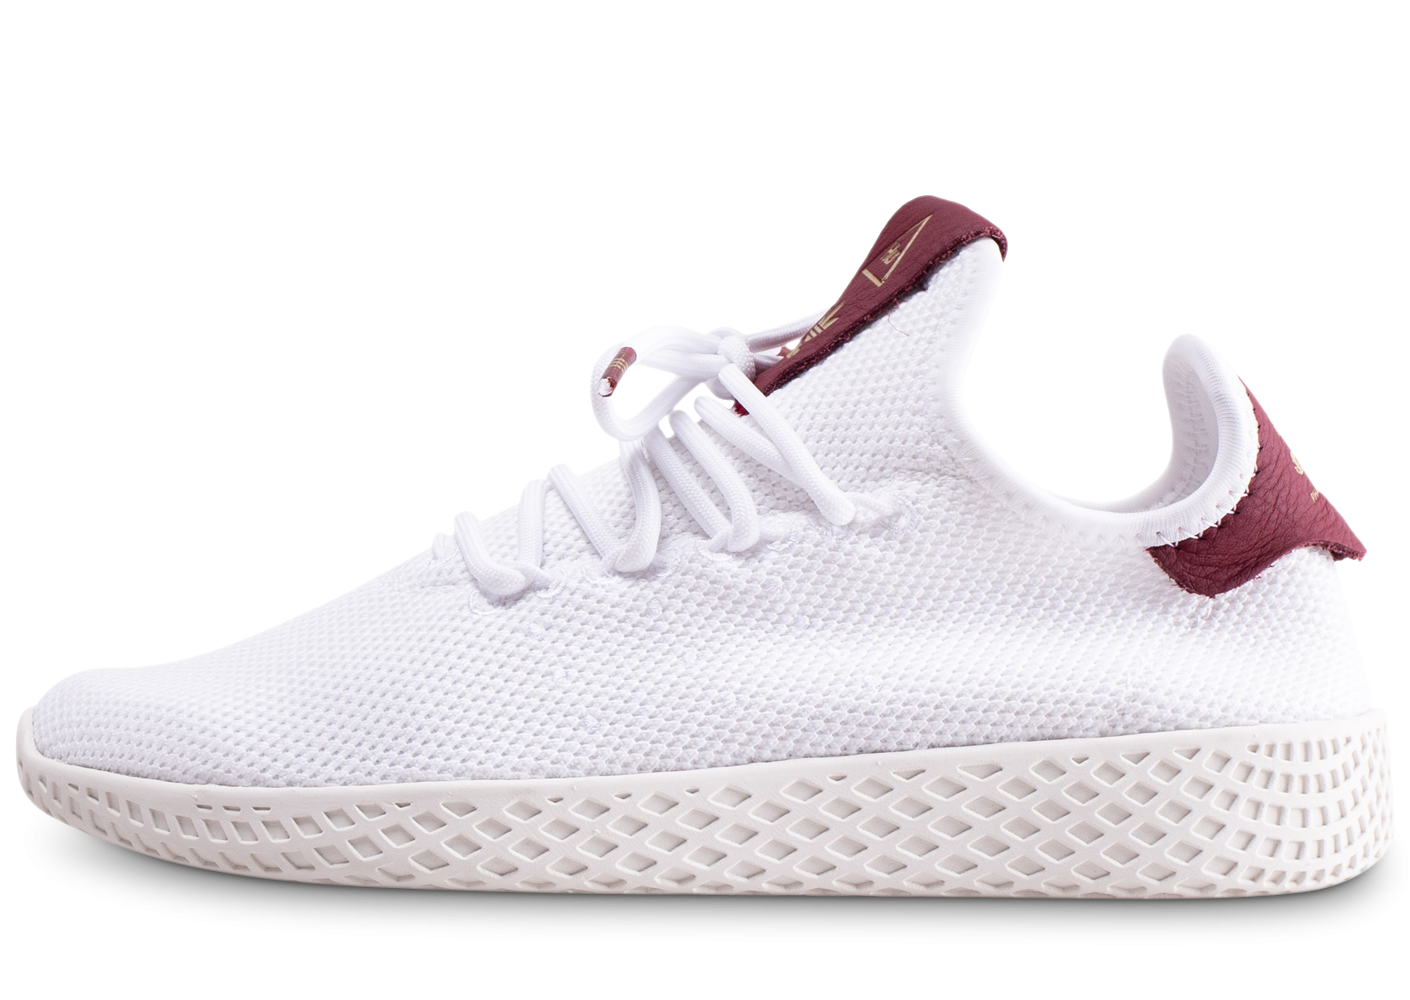 adidas Pharrell Williams Tennis Hu blanche et bordeaux femme